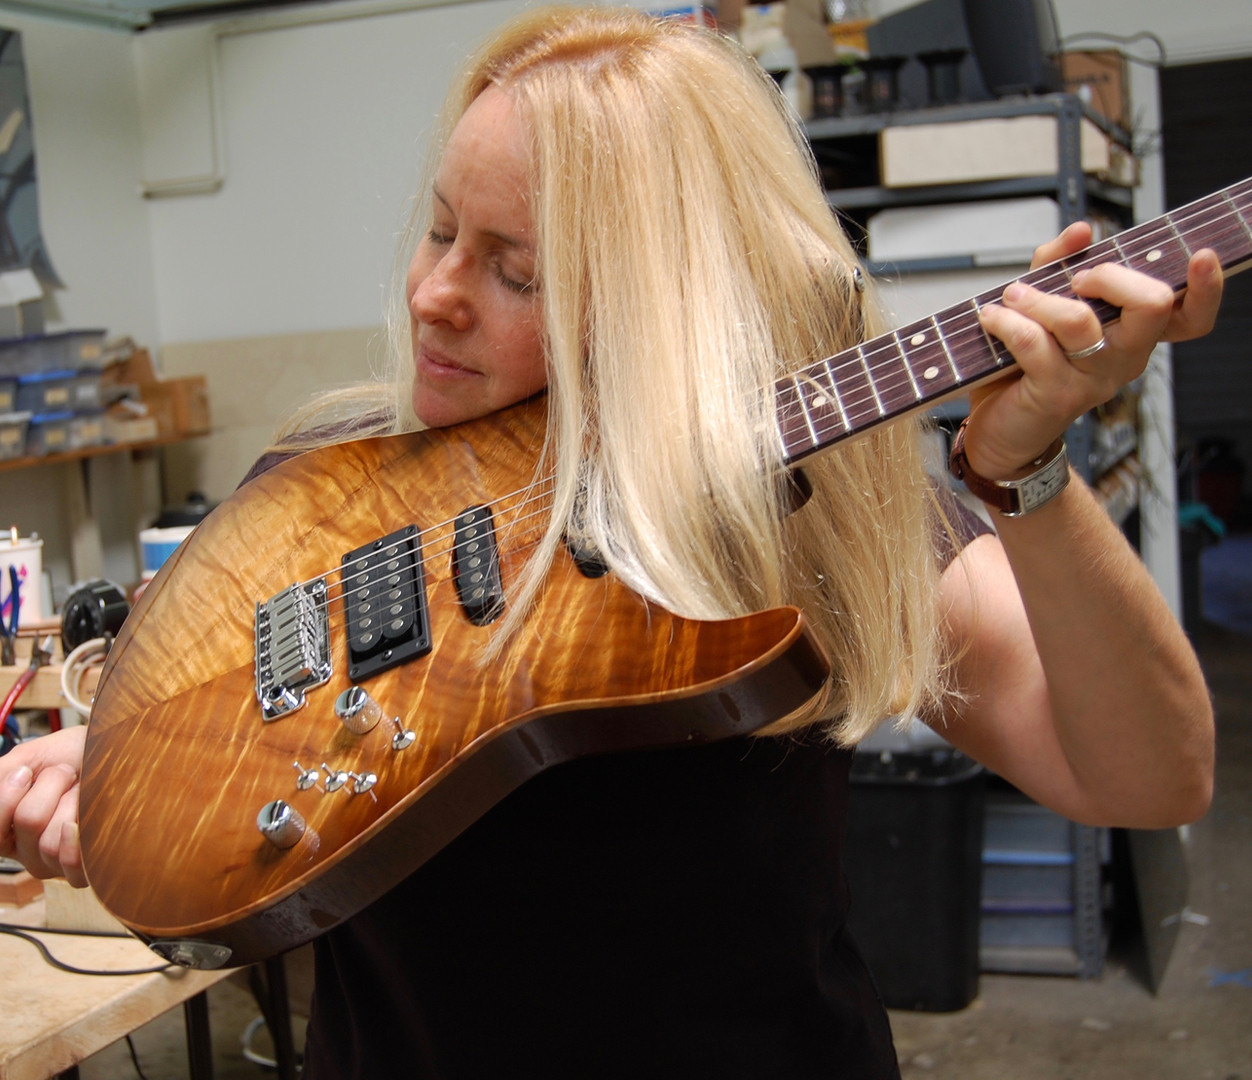 Checking out my new Tom Anderson Koa Hollow Droptop